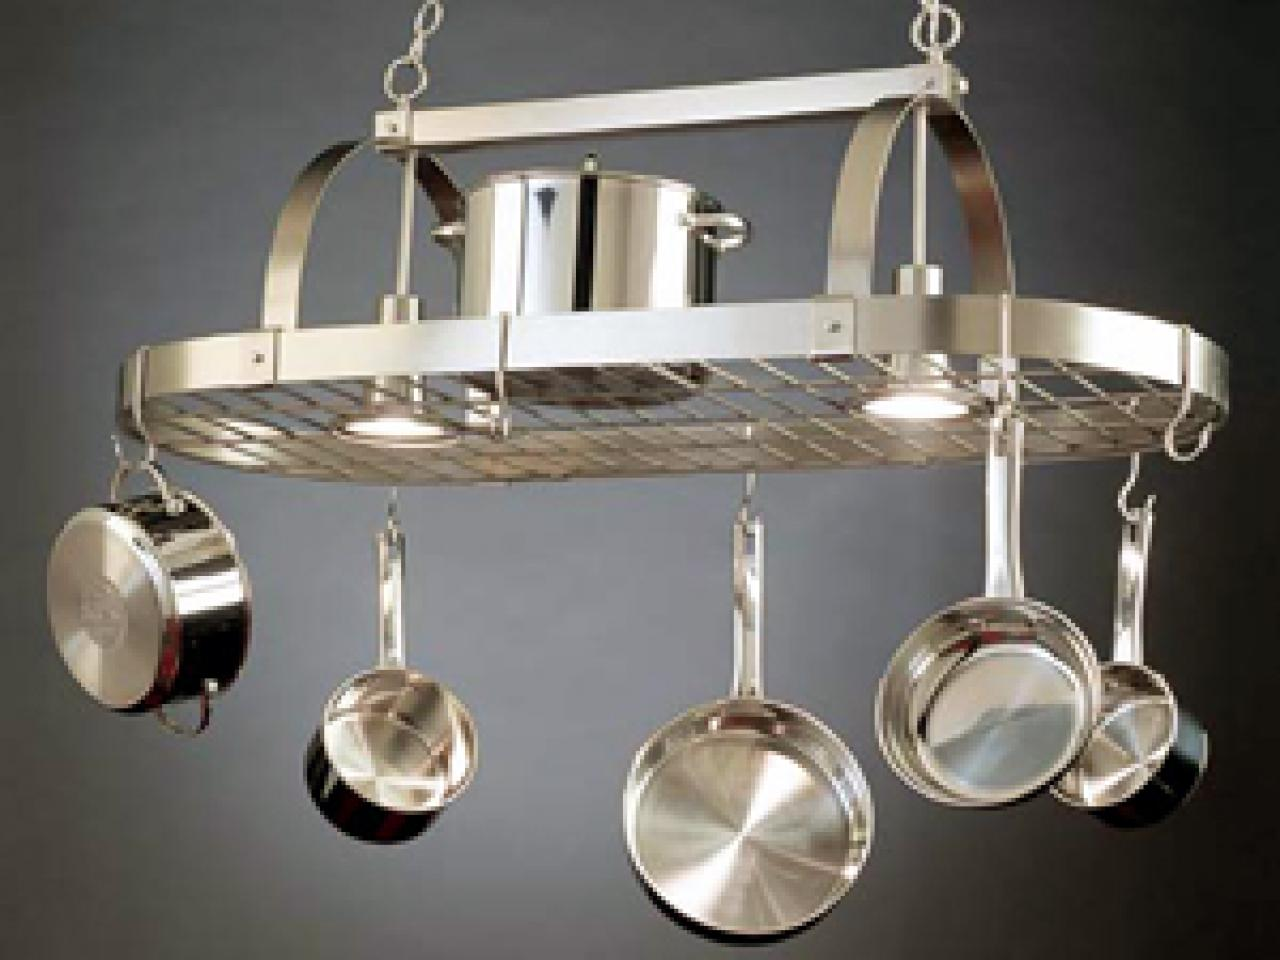 A pot rack in its proper place hgtv for Pot racks for kitchen